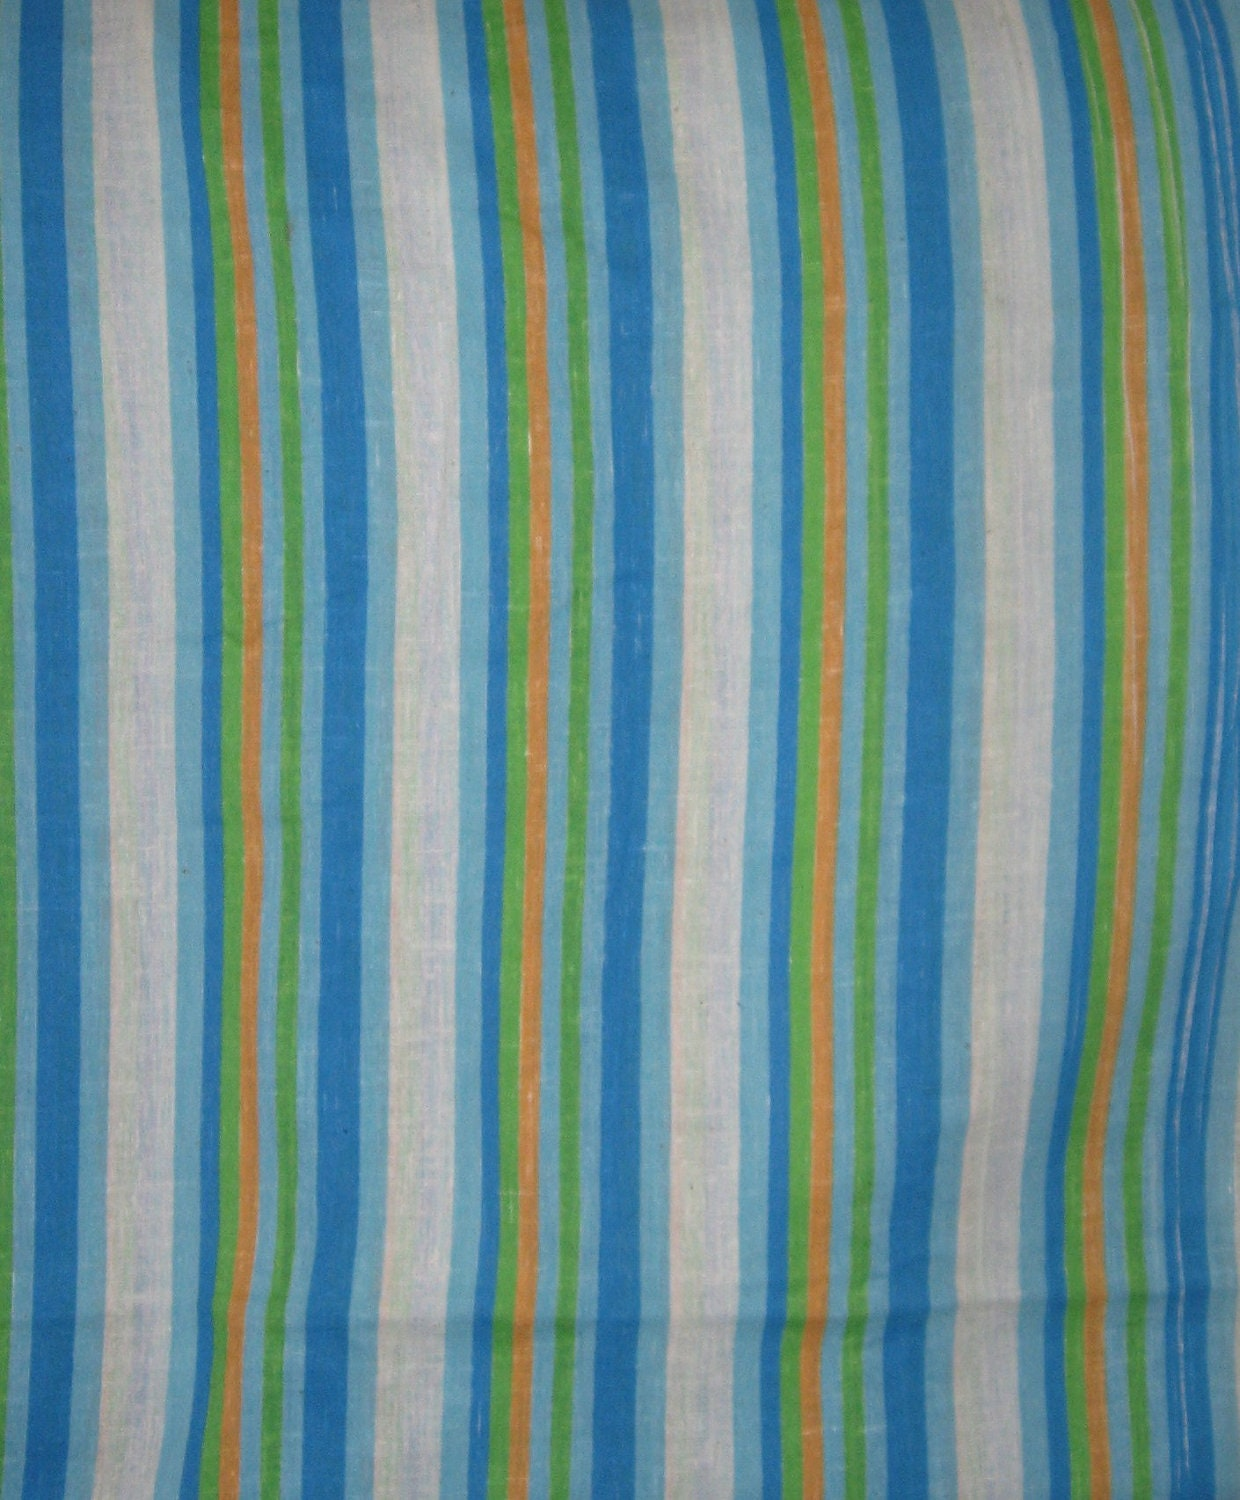 Curtain fabric - blue, green, white and orange striped - 2 yards plus ...